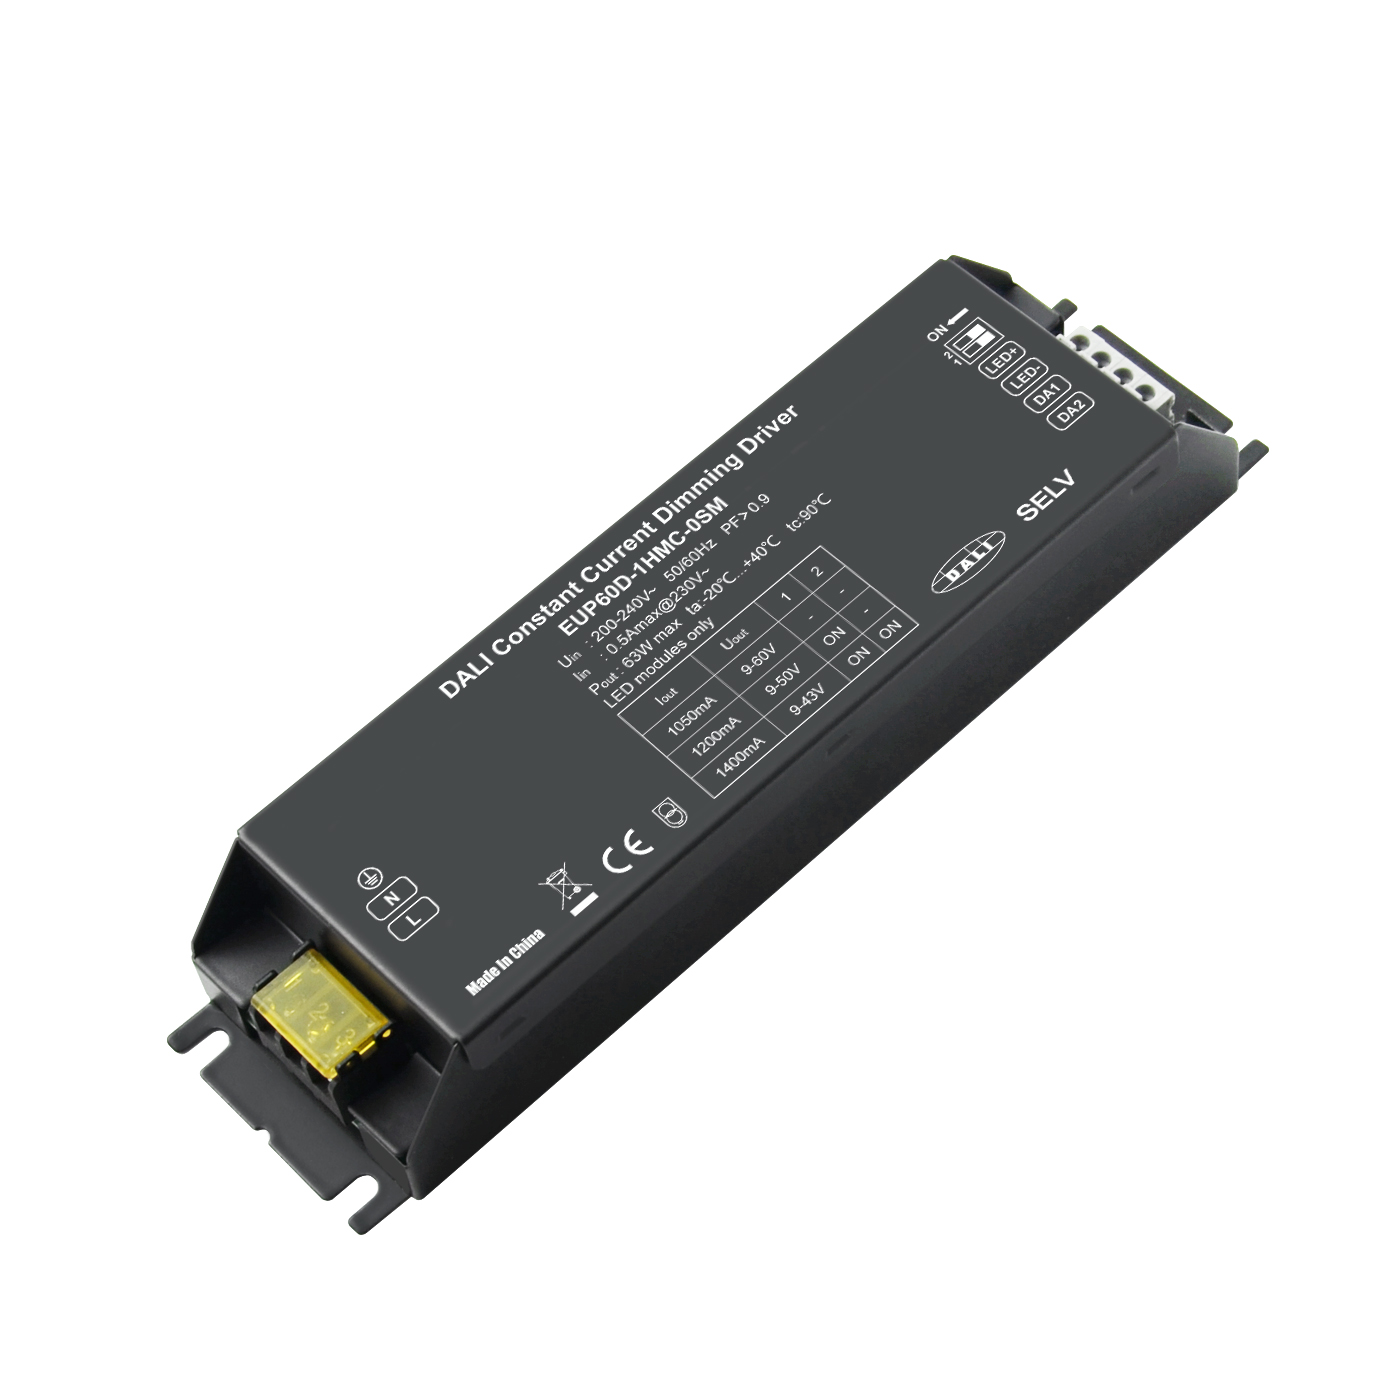 One of Hottest for Pwm10v Led Signal Converter -